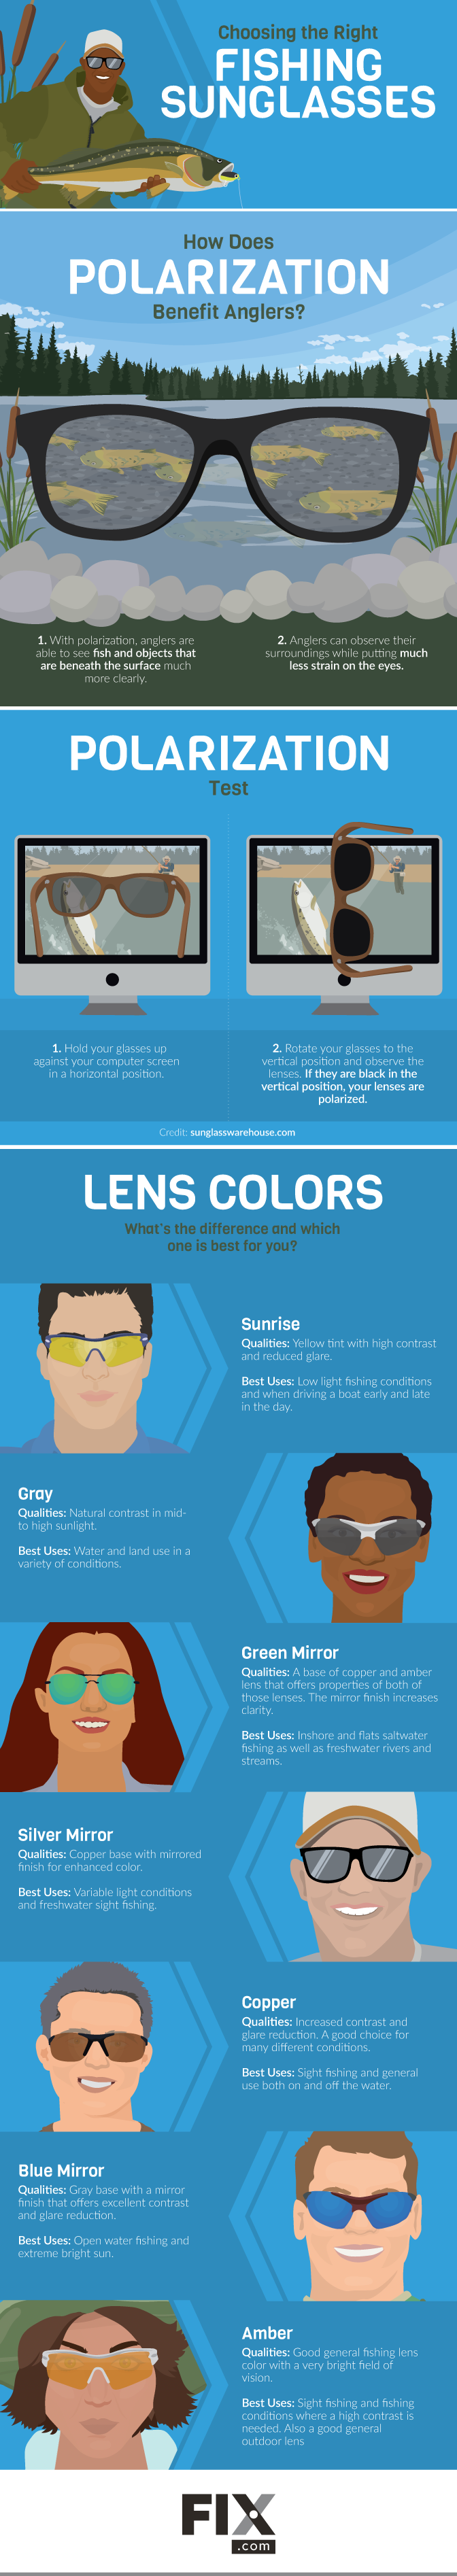 Choosing the Right Fishing Sunglasses #infographic